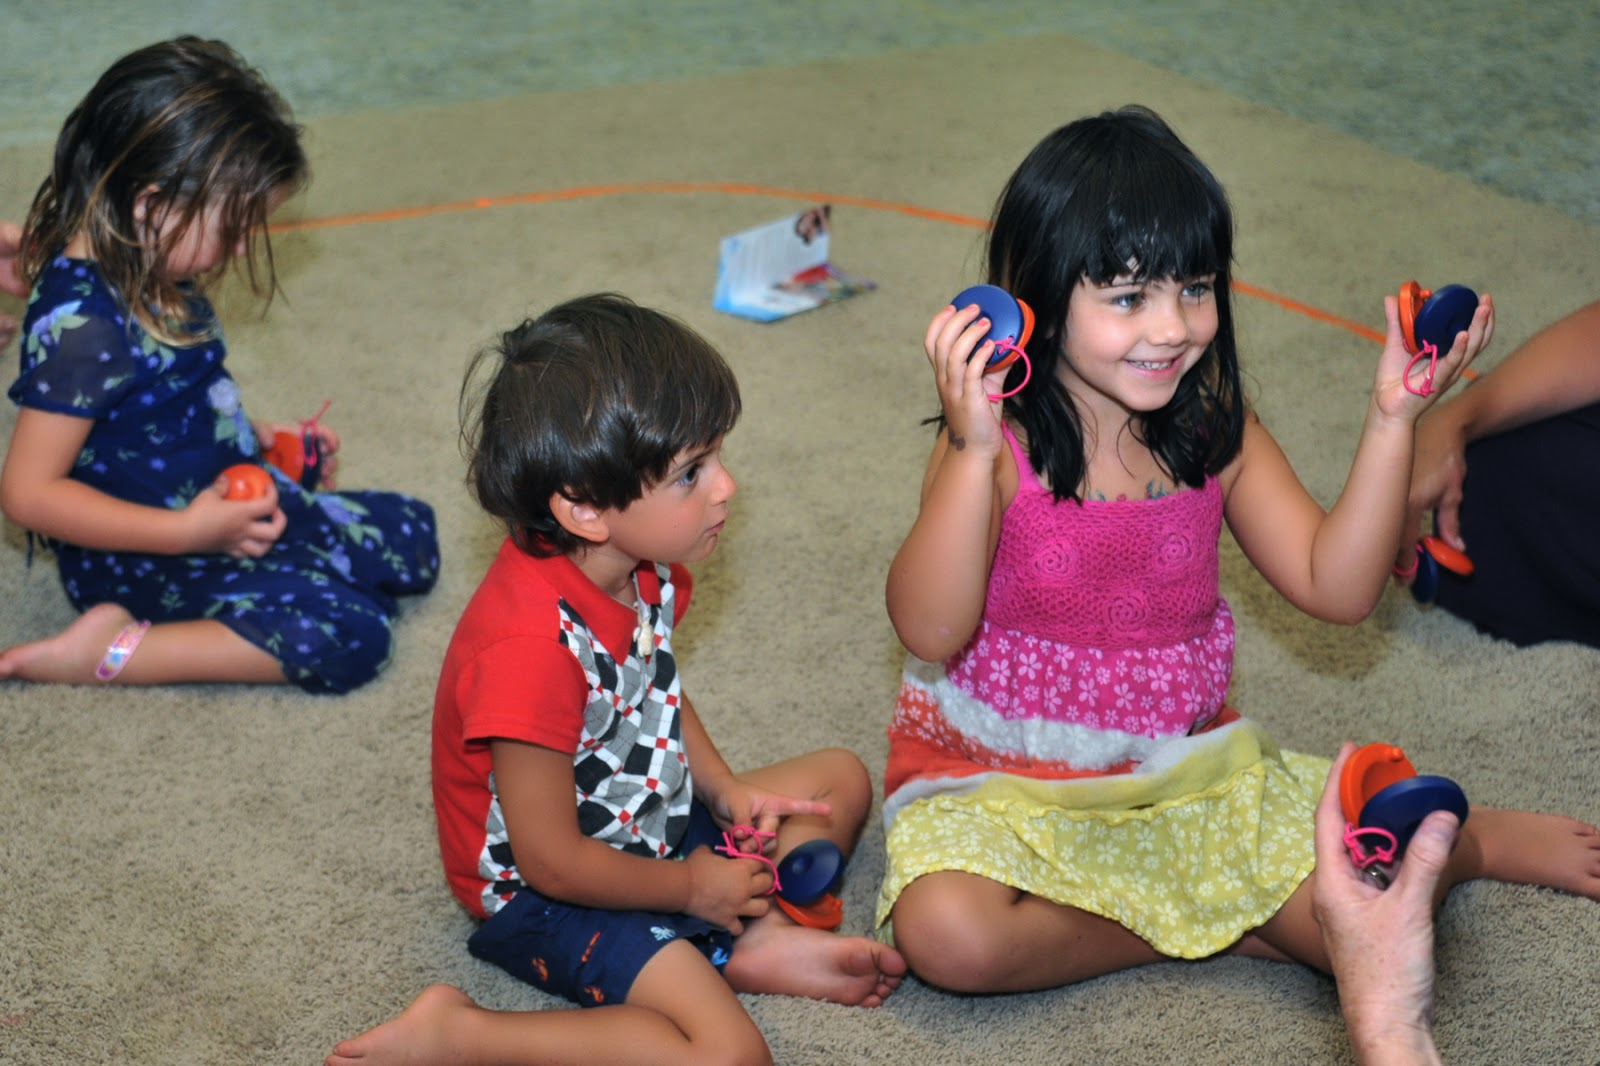 musically montessori learning to use scissors by playing